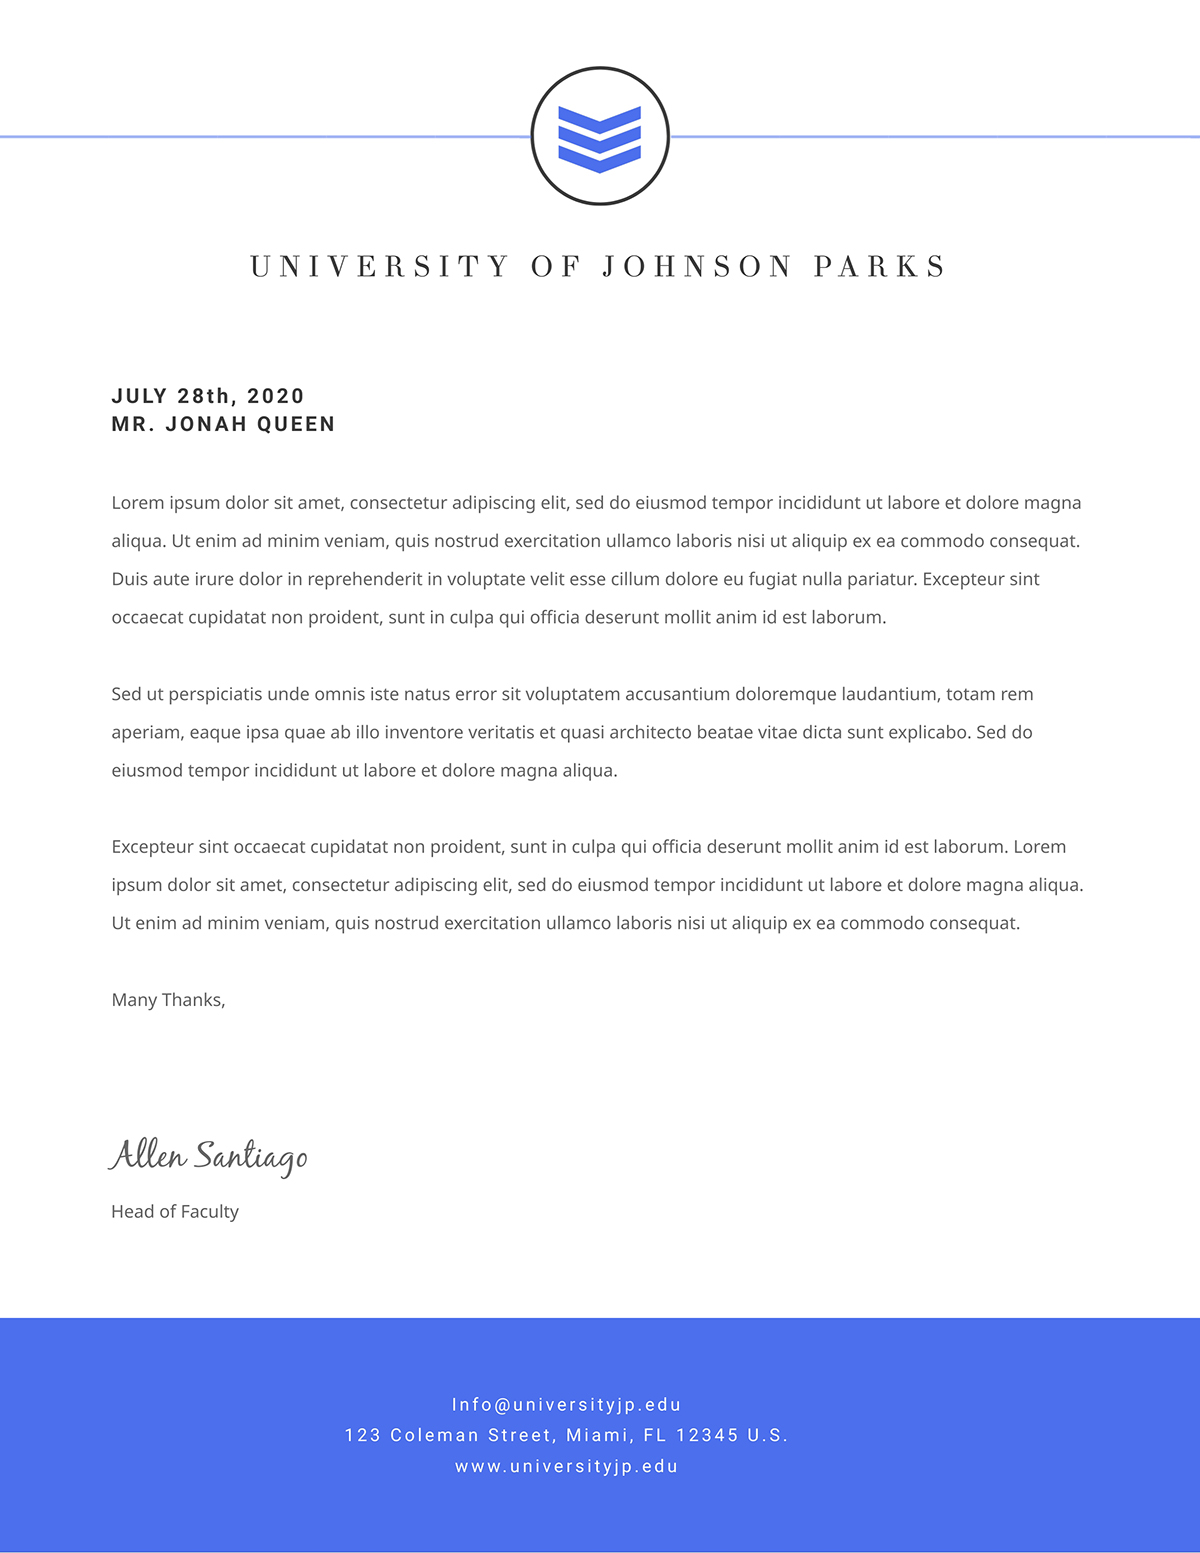 A university letterhead template available in Visme.